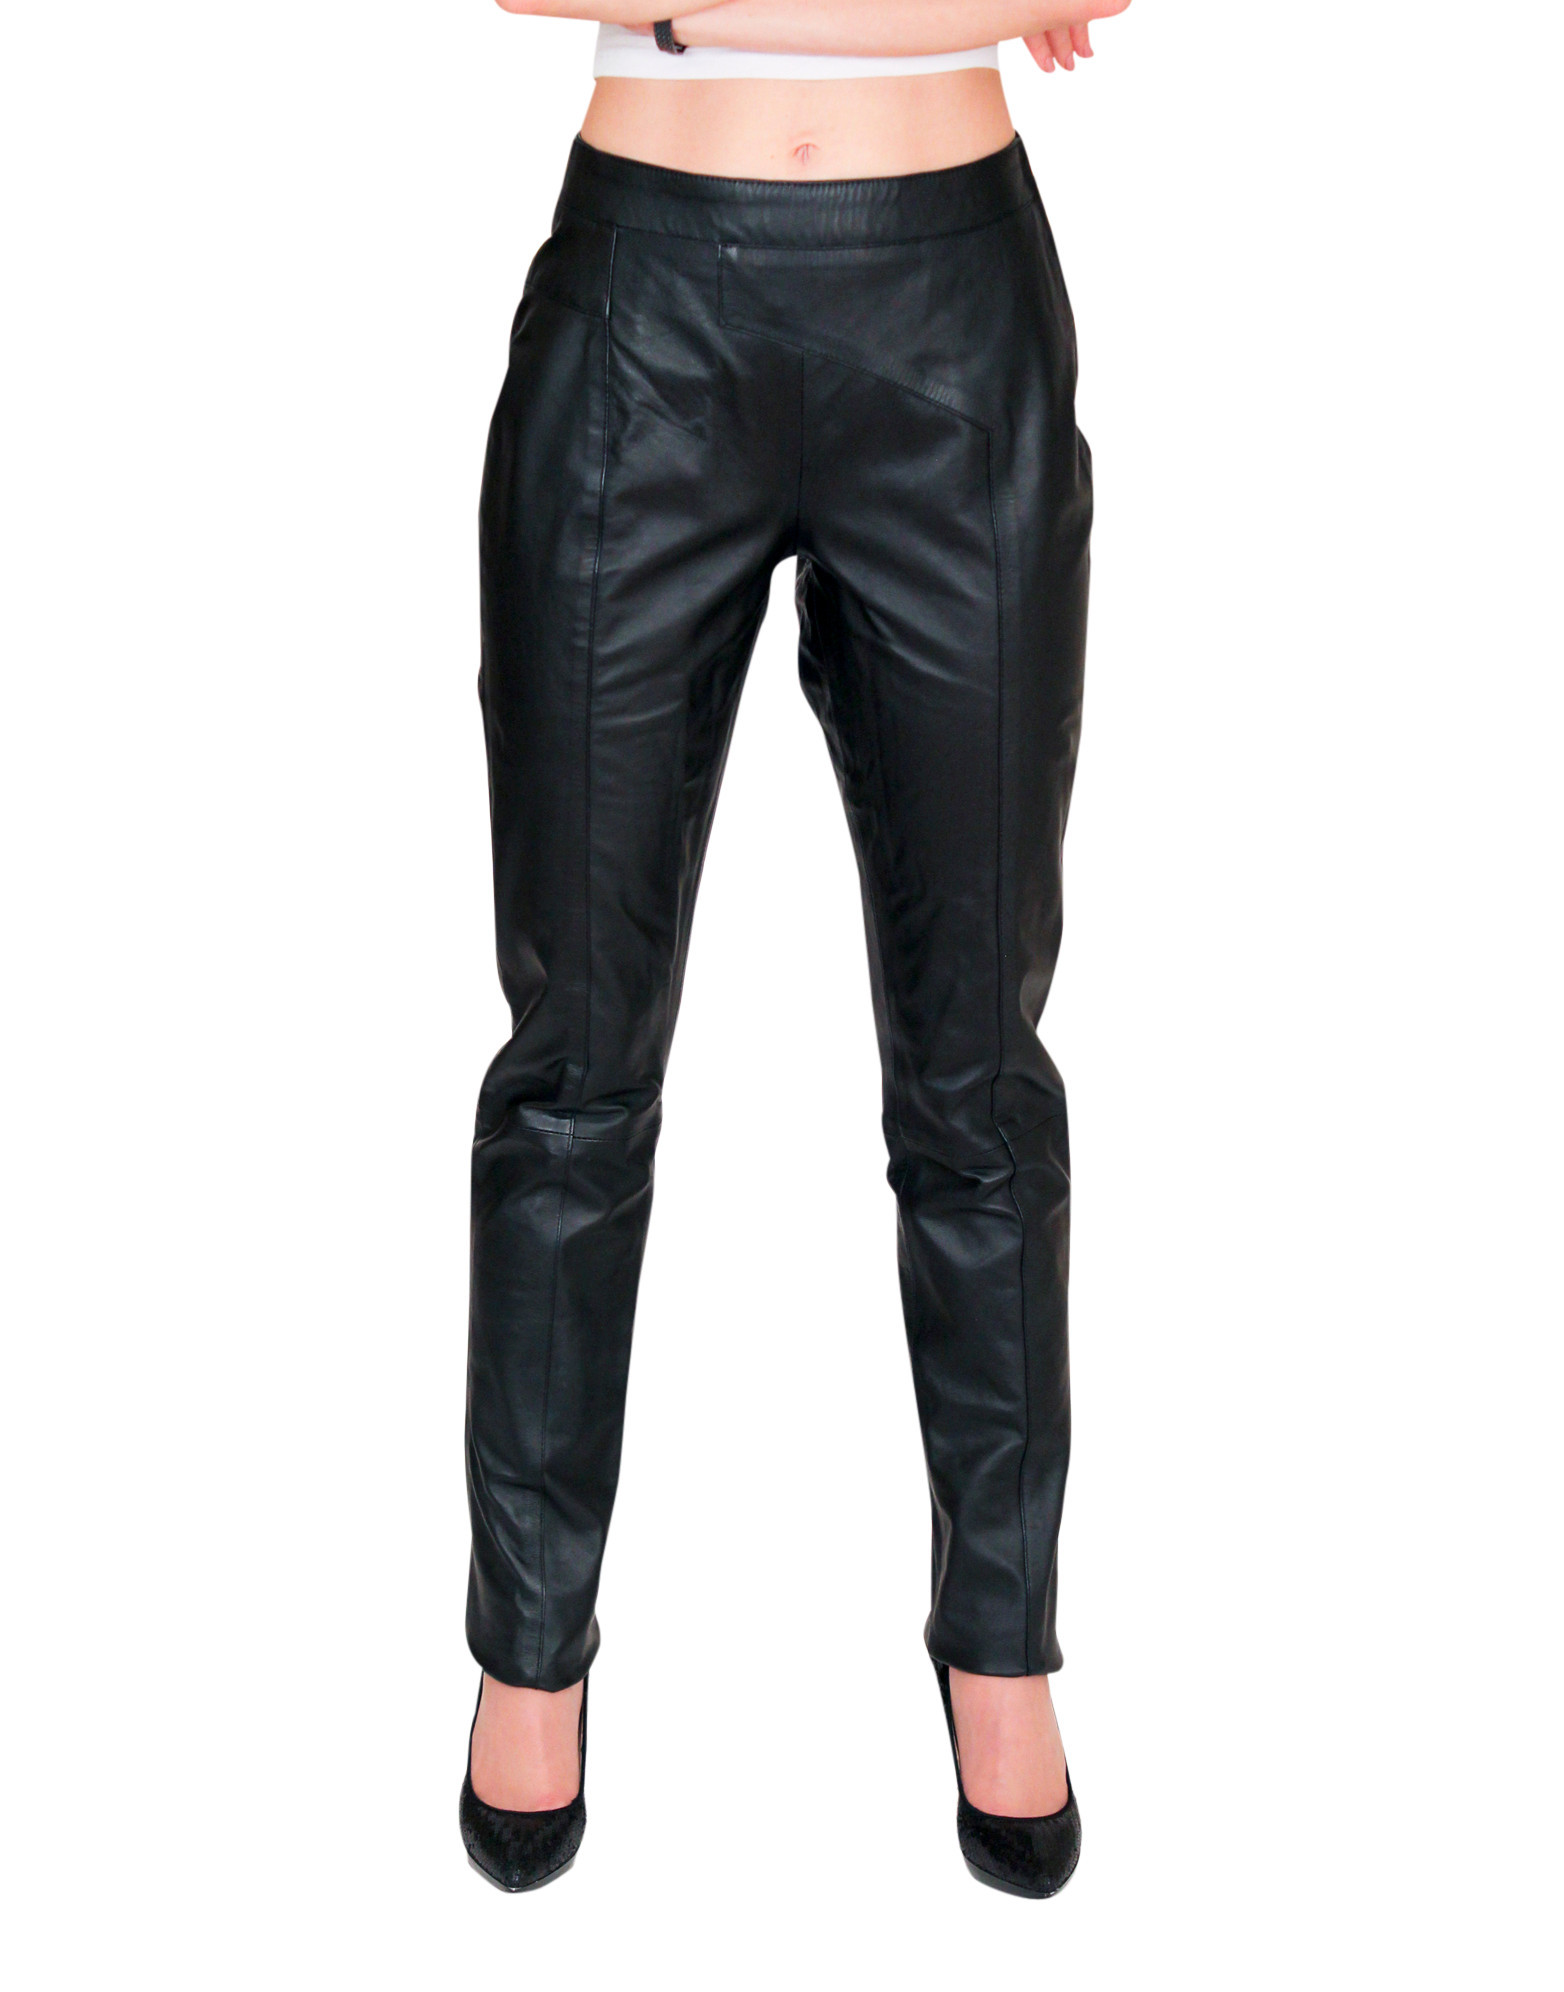 Colors: black. Sizes:  xxs xs s m l xl ... The low-rise lambskin asymmetrical fitted trouser is a nice addition to our women